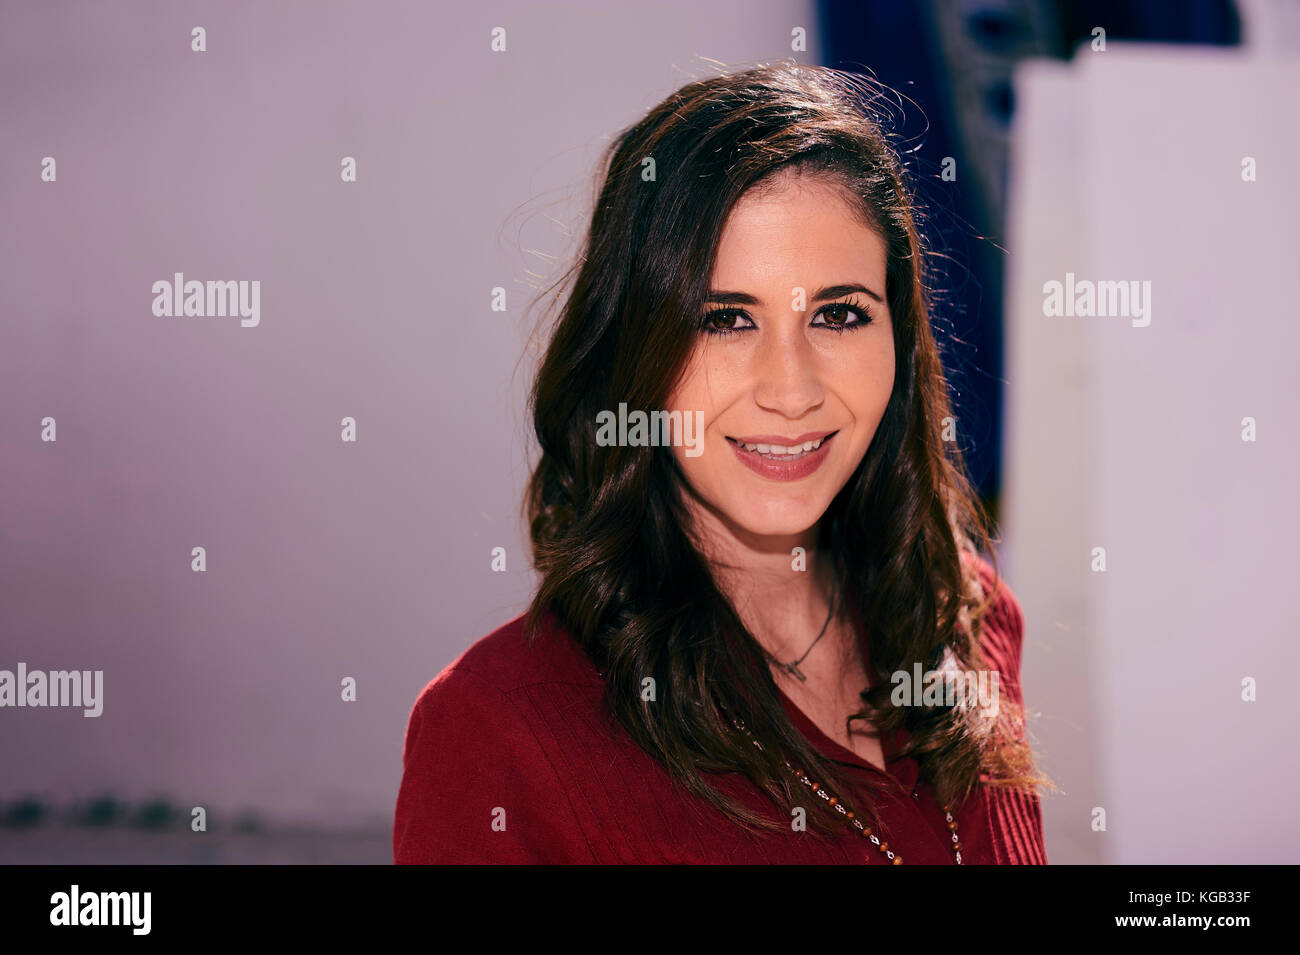 Young latino woman smiling - Stock Image